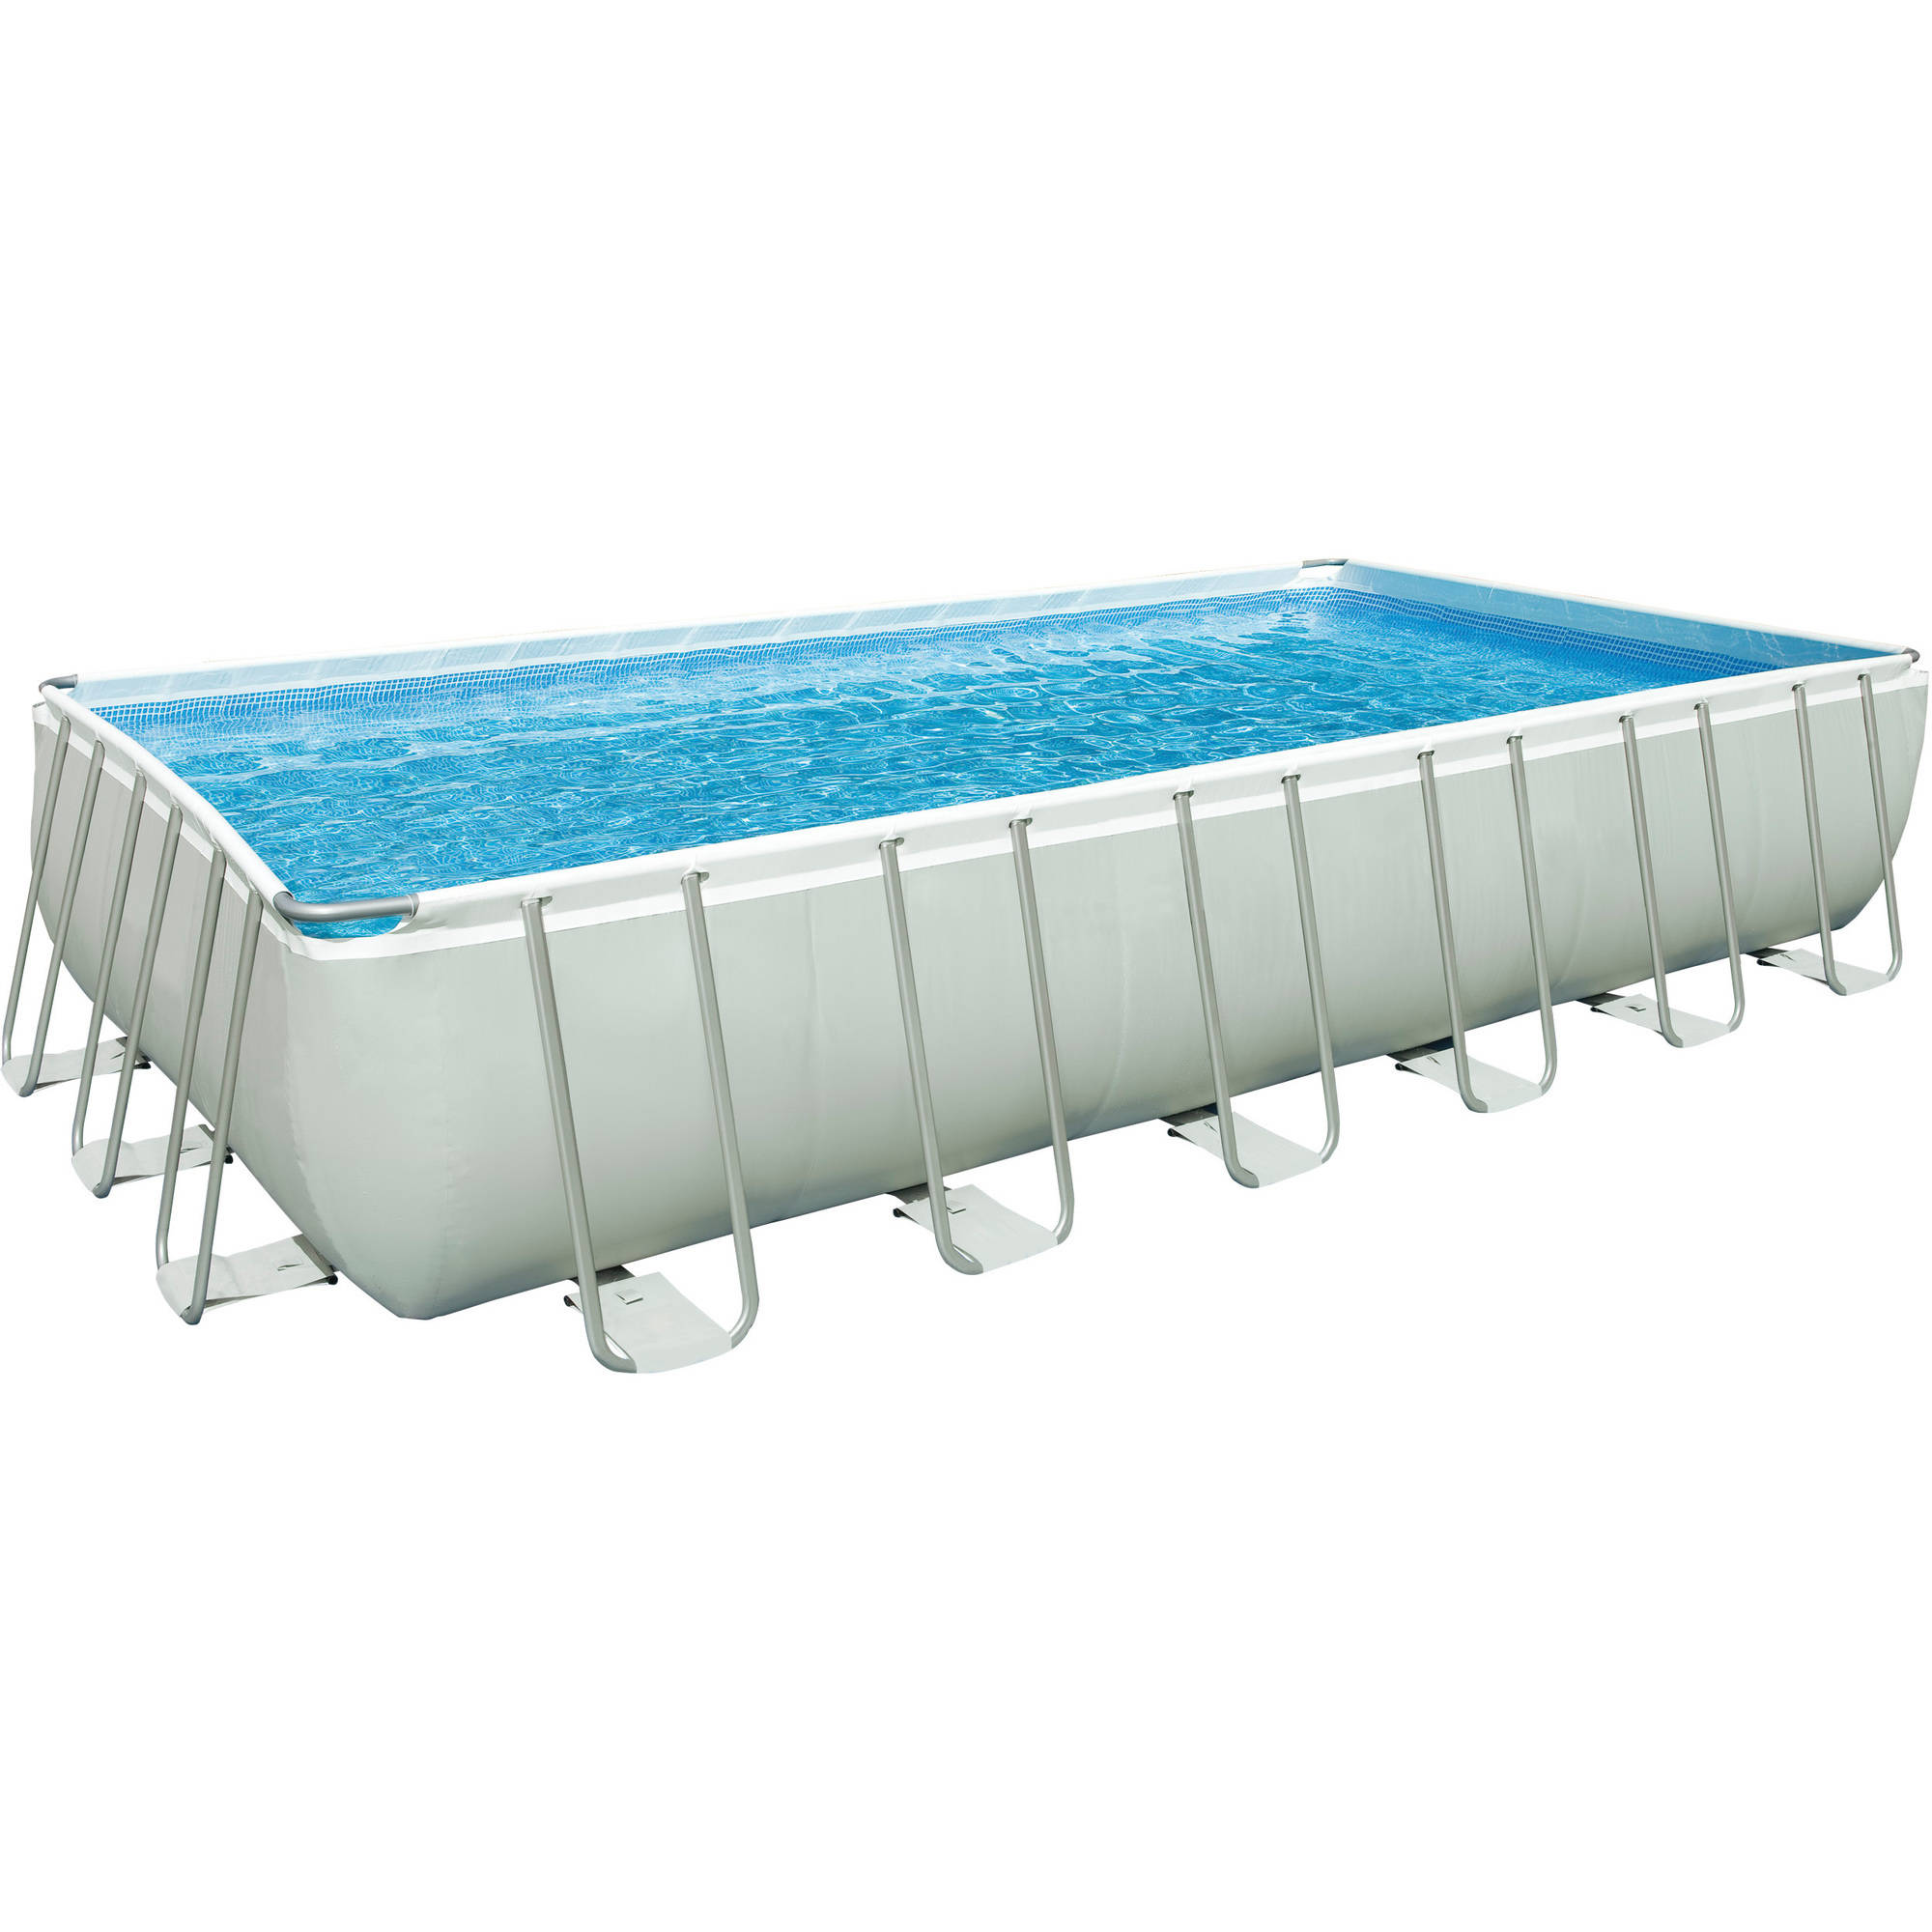 "Intex 24' x 12' x 52"" Ultra Frame Rectangular Above Ground Swimming Pool with Sand Filter Pump by Intex"